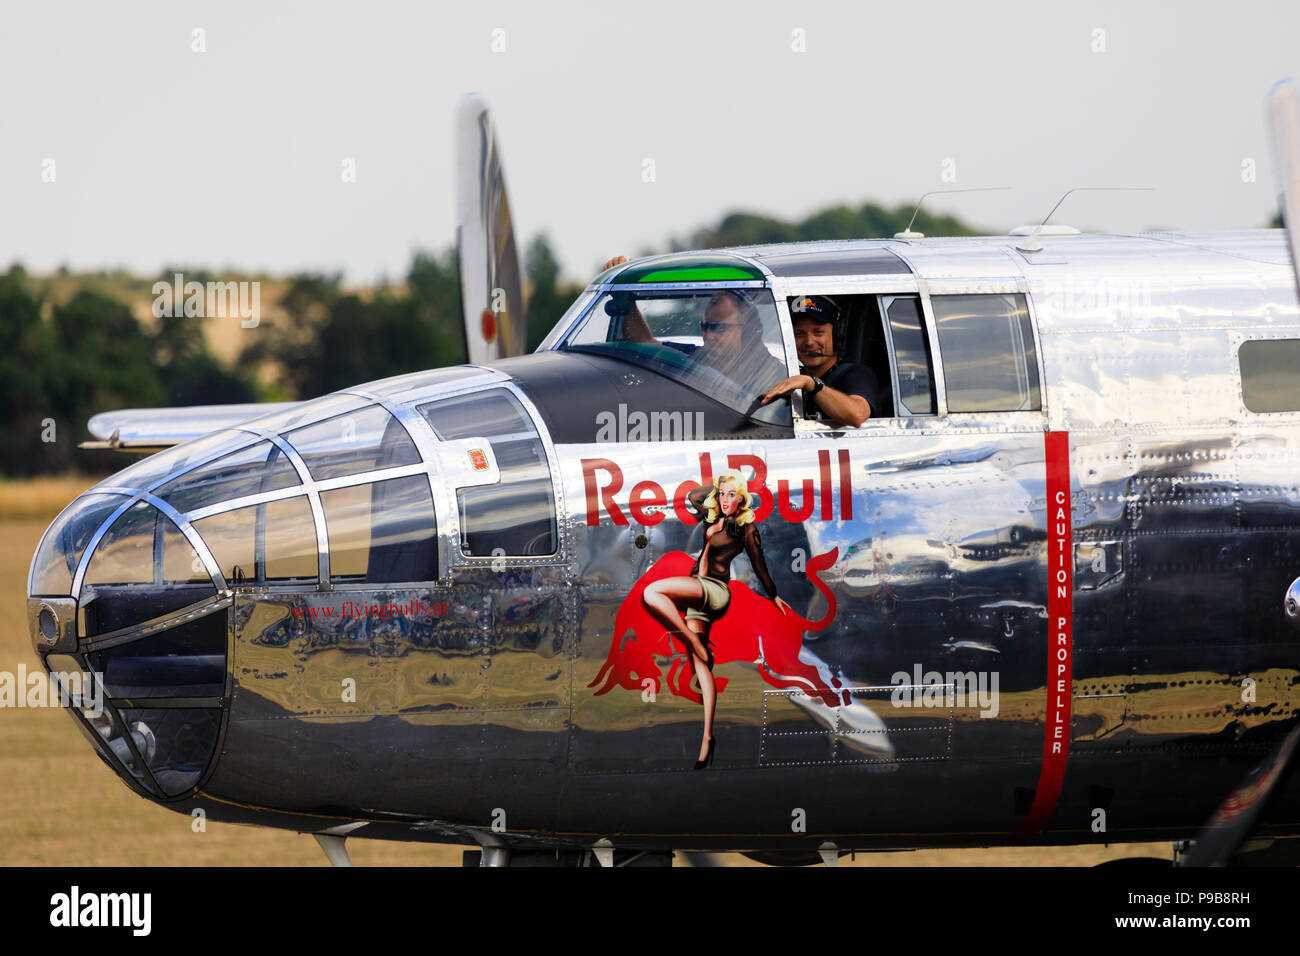 Red Bull North American B25J Mitchell medium bomber, N6123C. Crew waving to crowds at the end of a display. - Stock Image